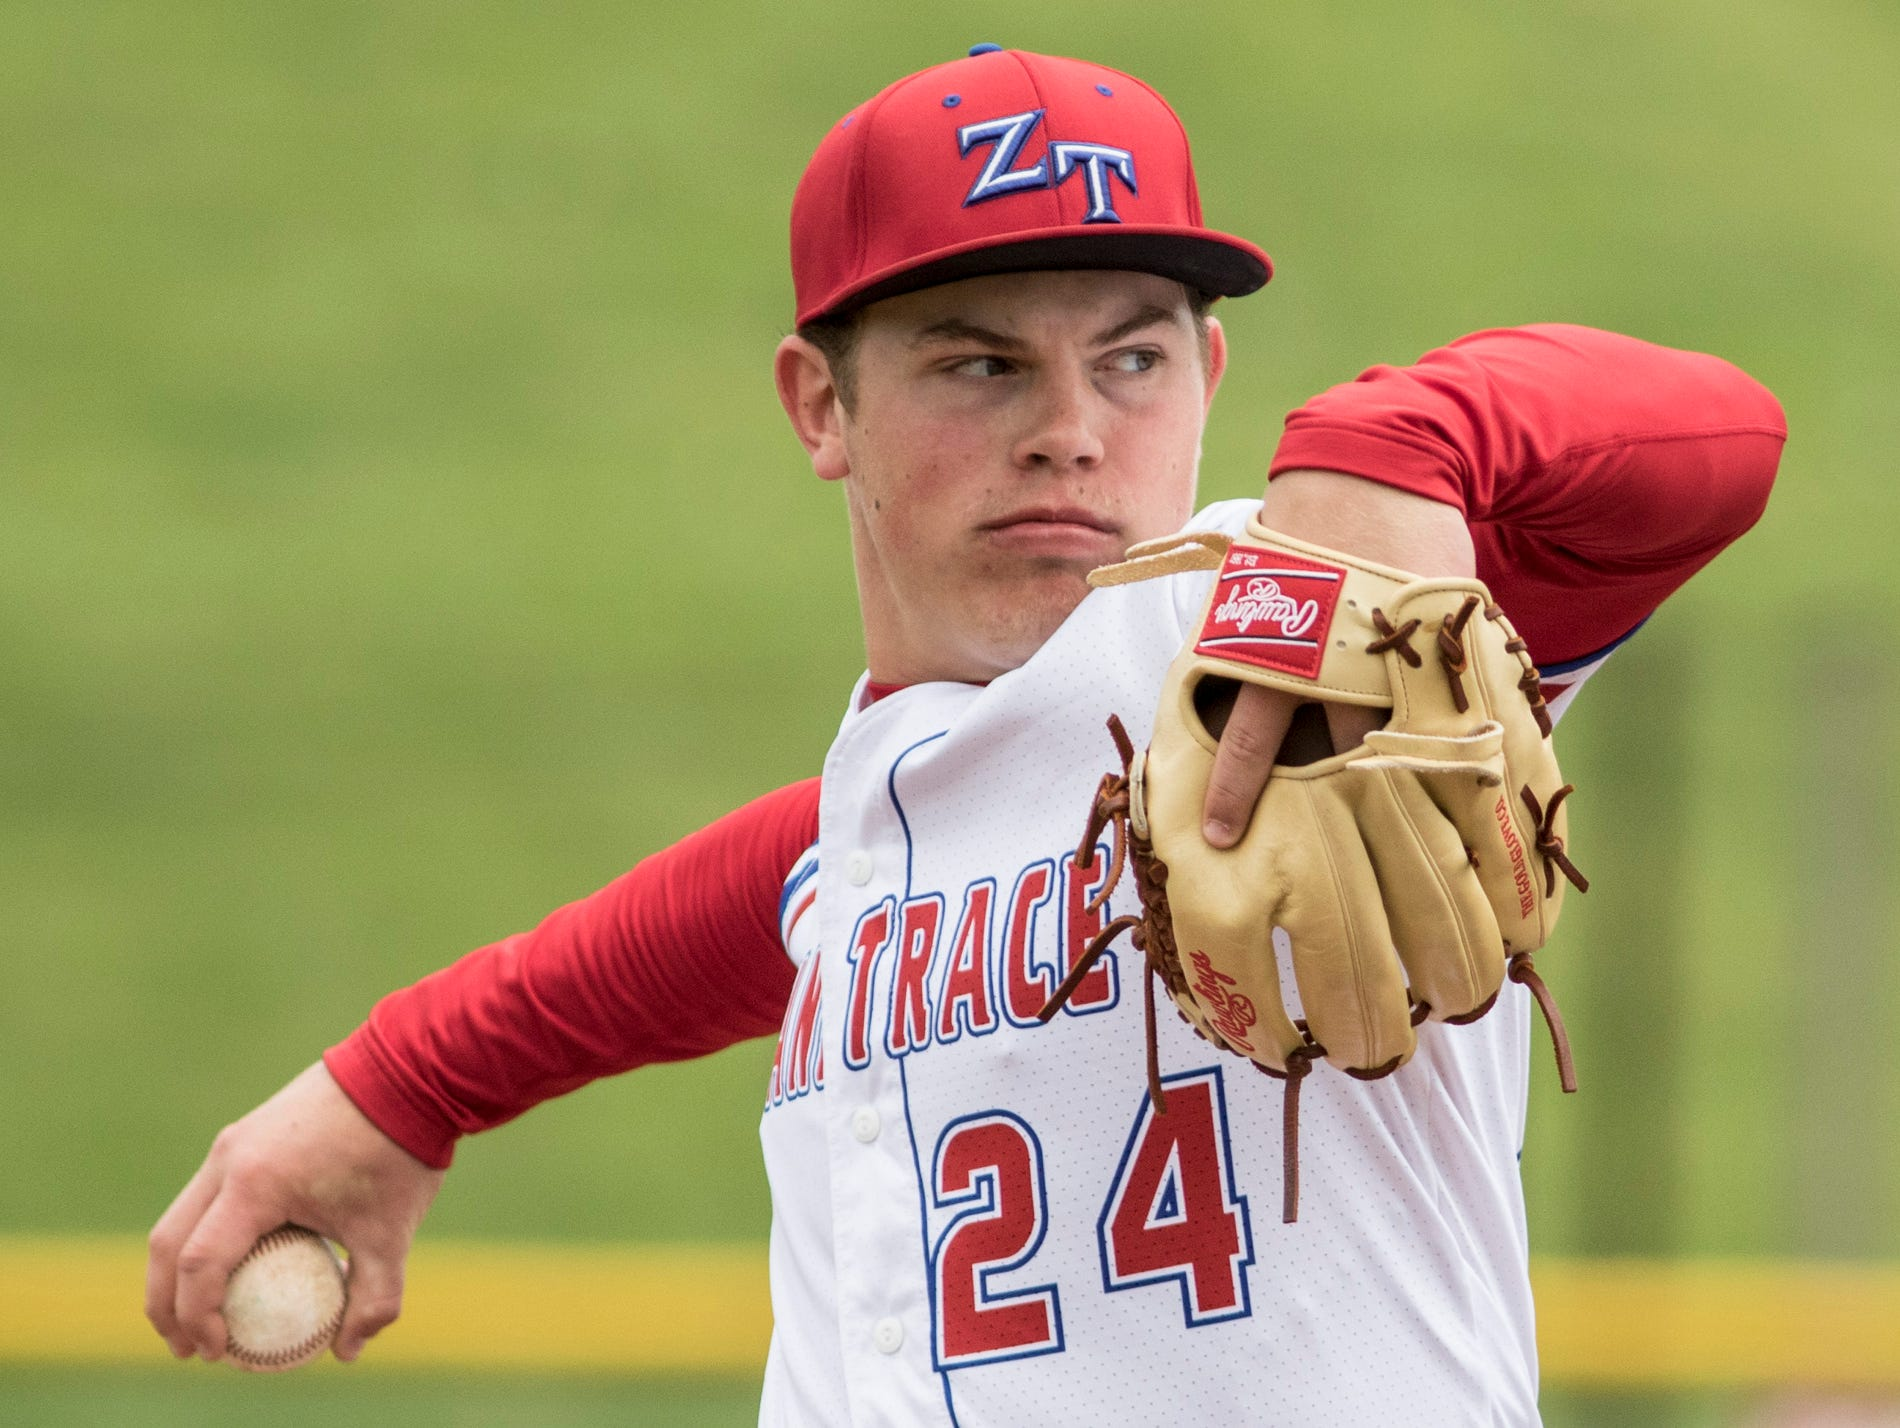 Chad Ison pitches against Chesapeake High during a game earlier in the season.